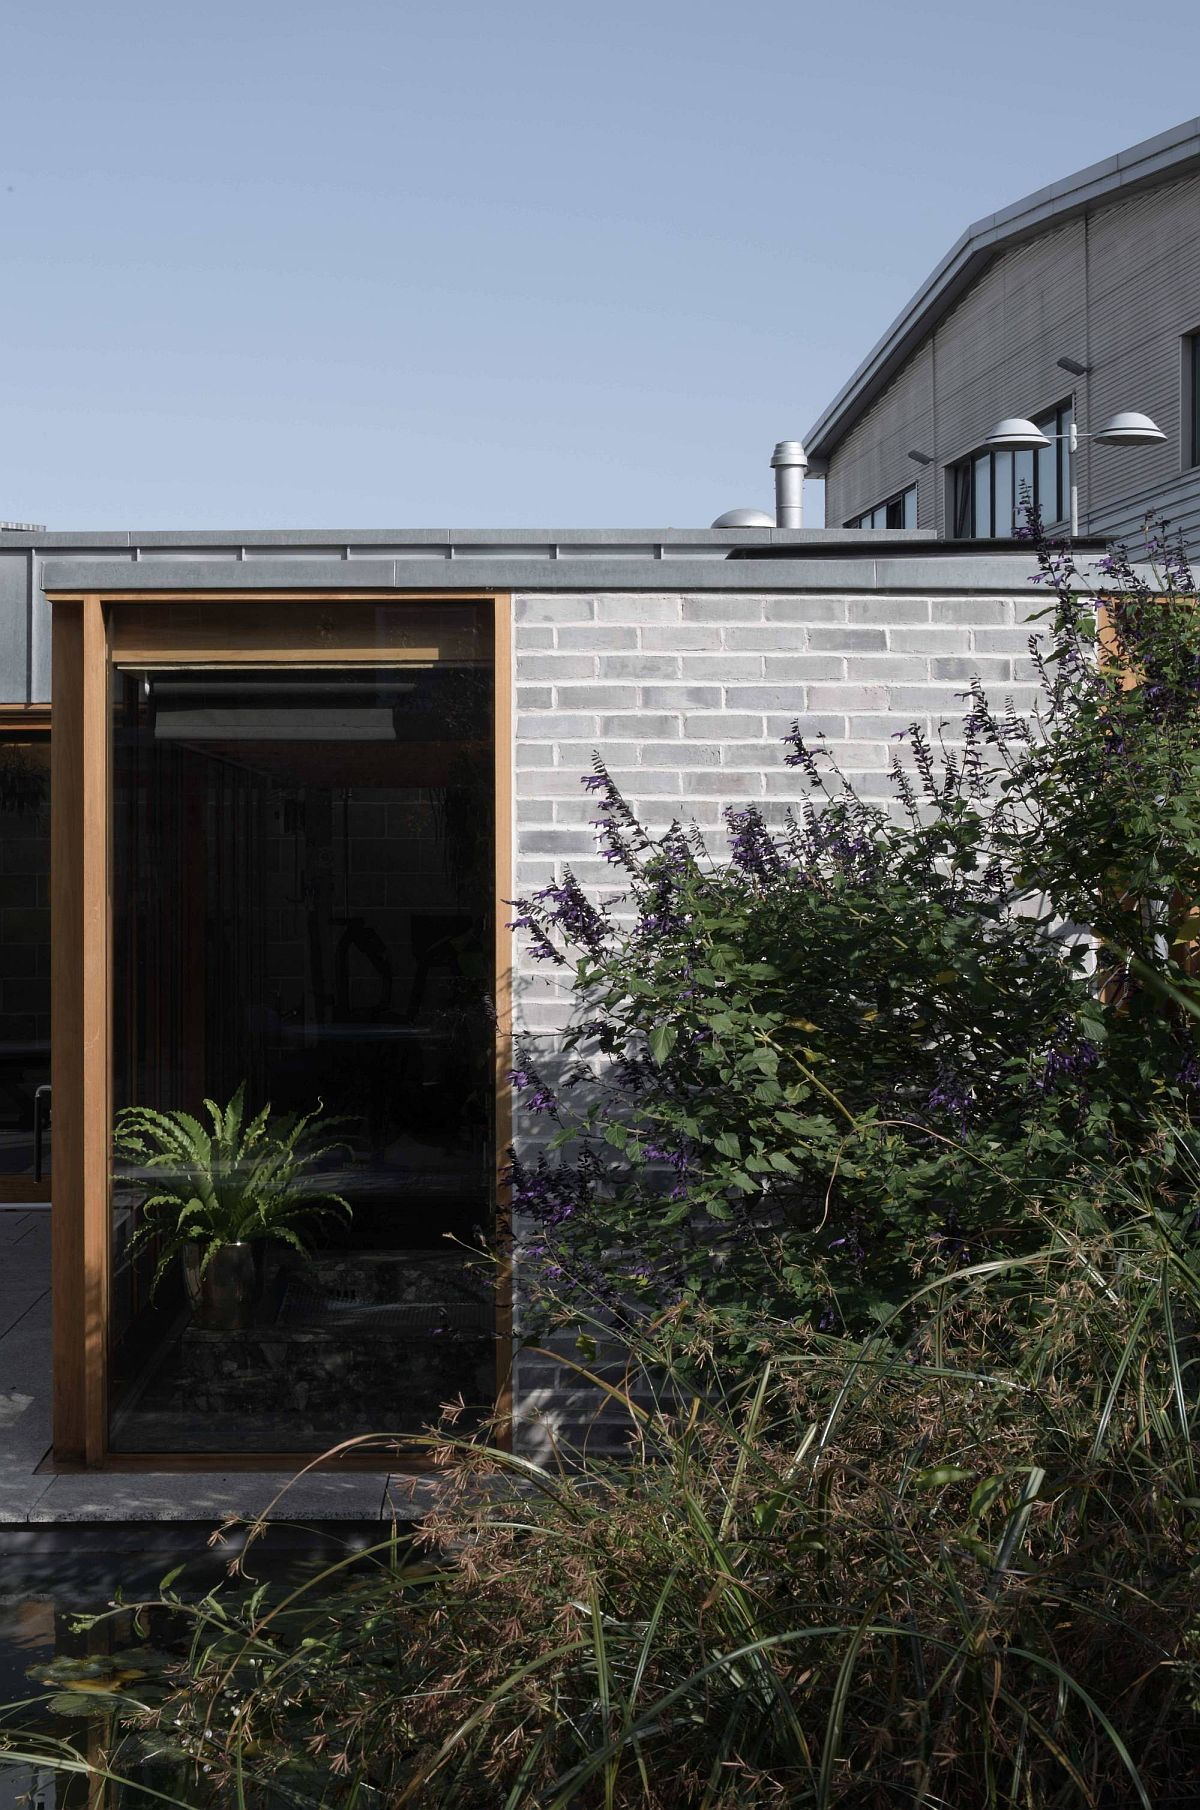 Exposed blockwork walls, wood and glass shpe the lovely backyard escape